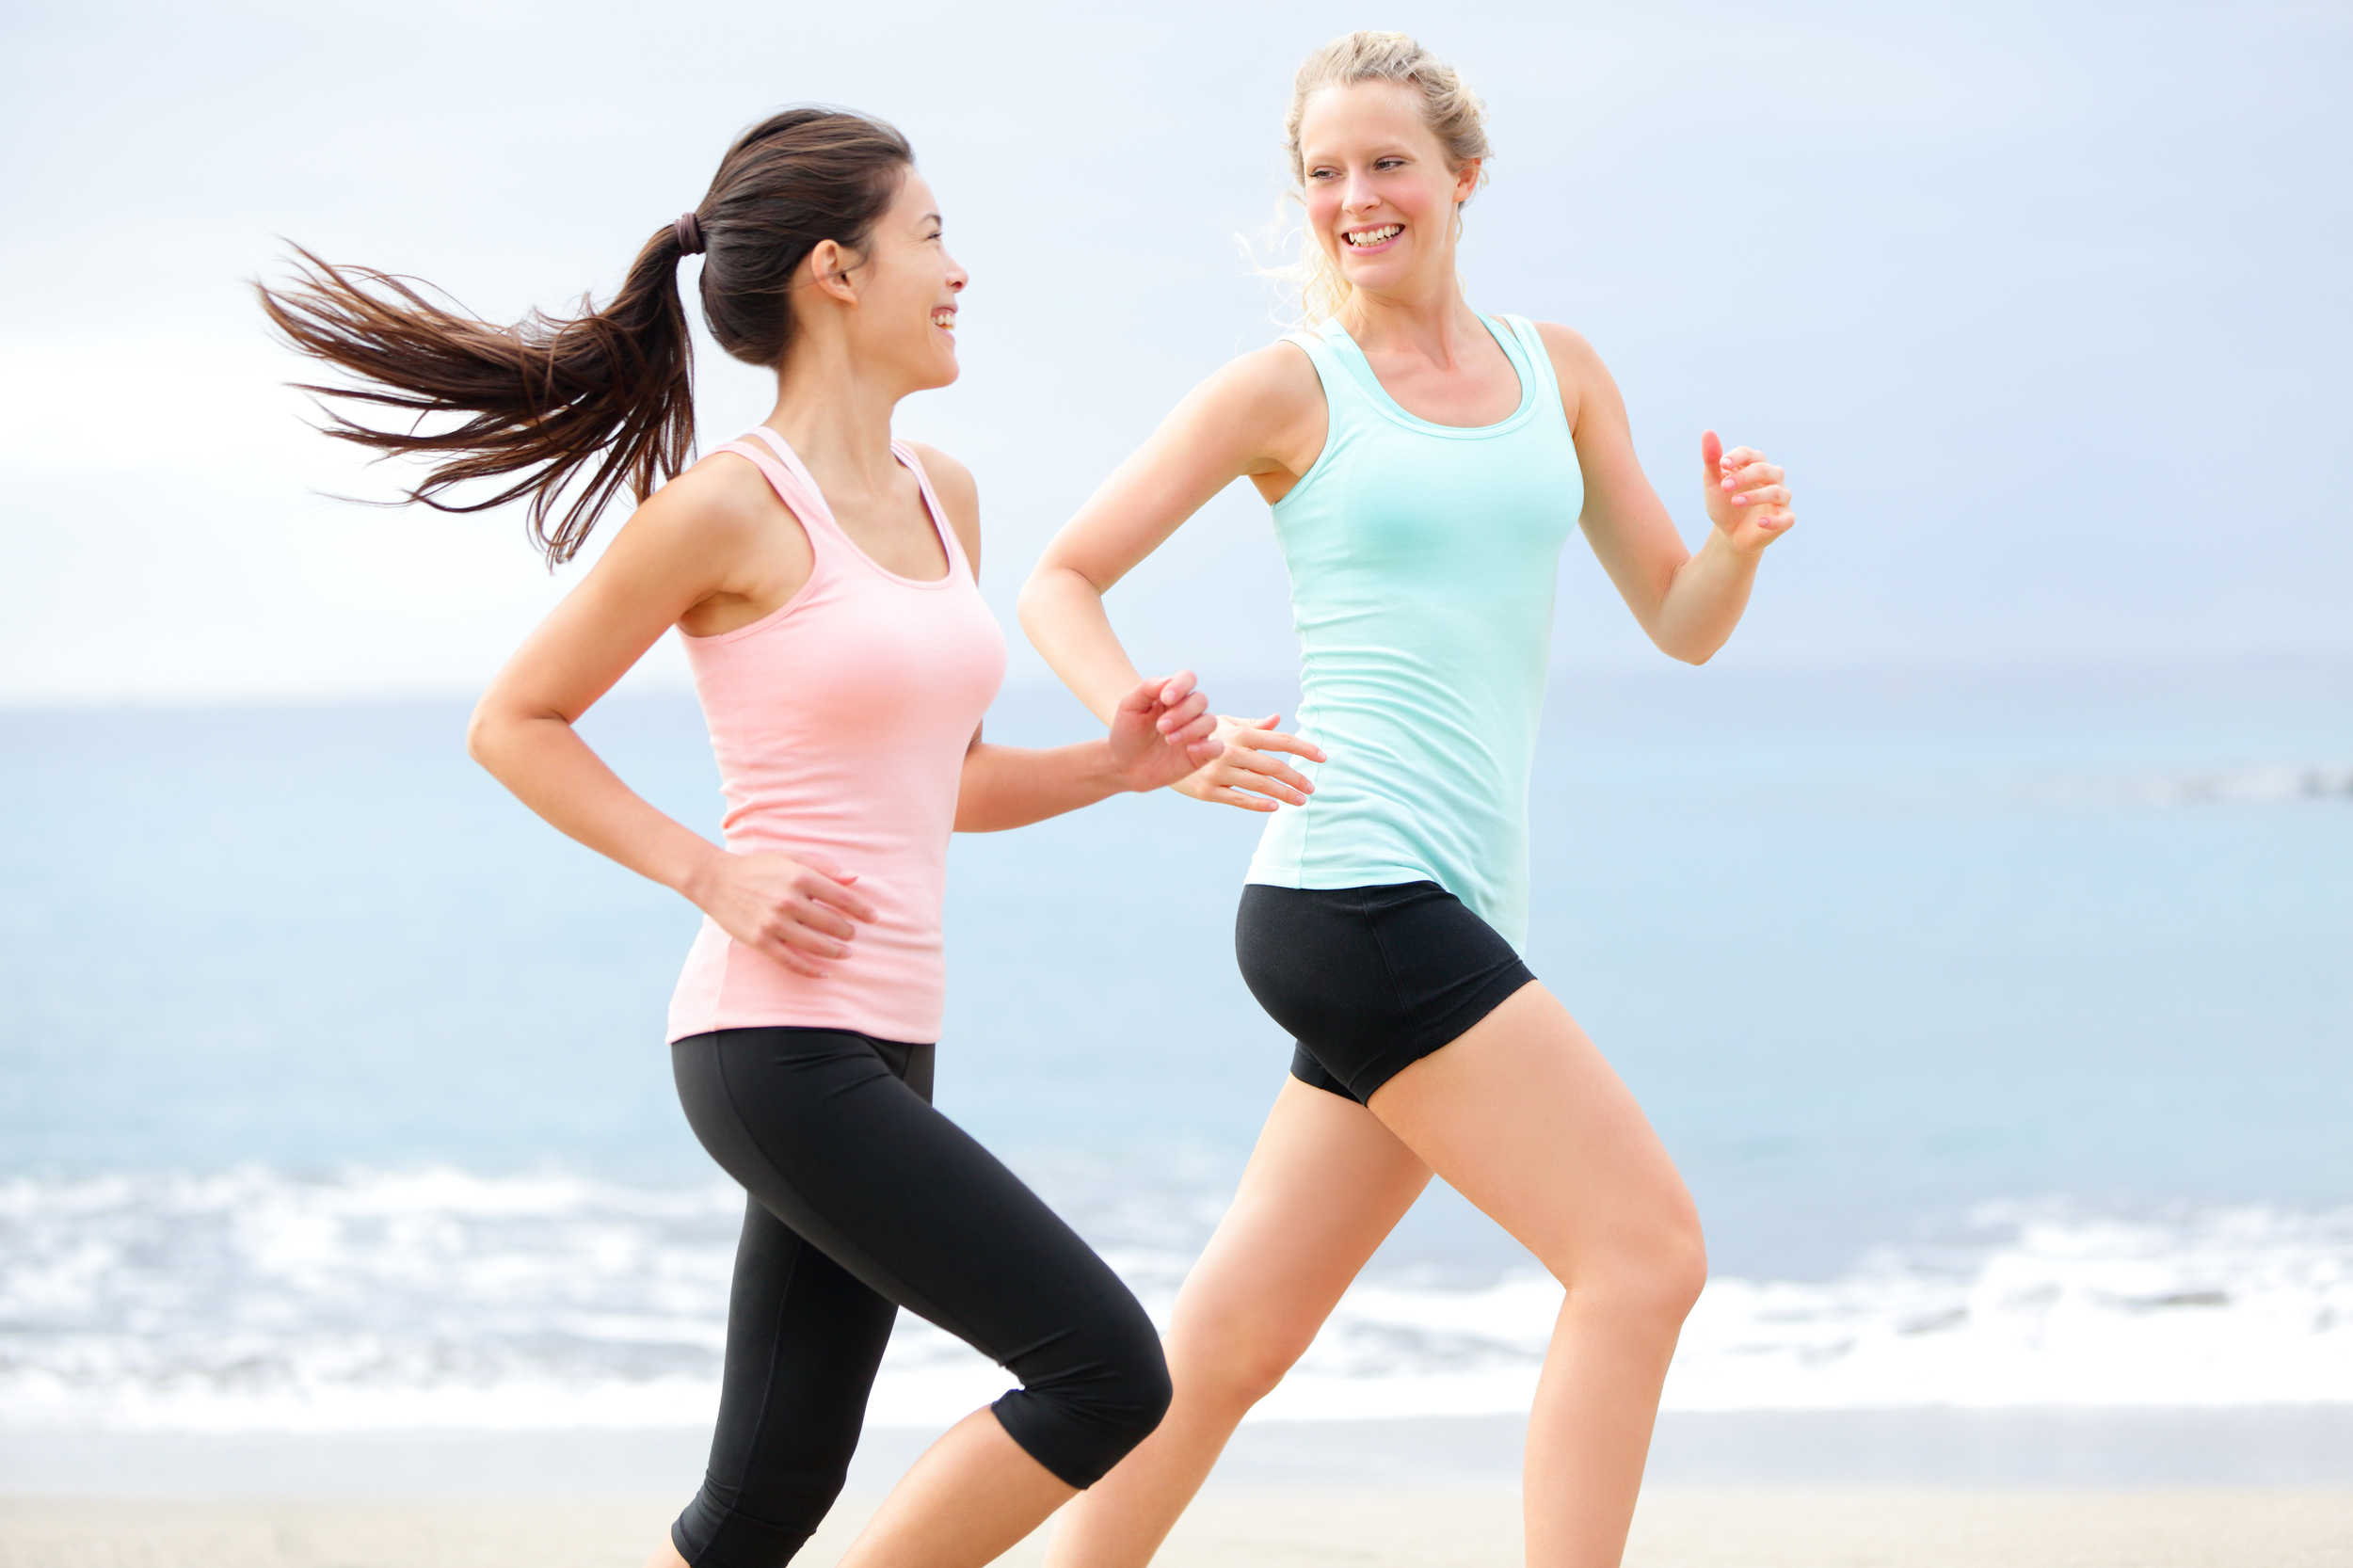 Two women running on the beach. Exercise can help reduce brain fog. Too much exercise can cause brain fog though.